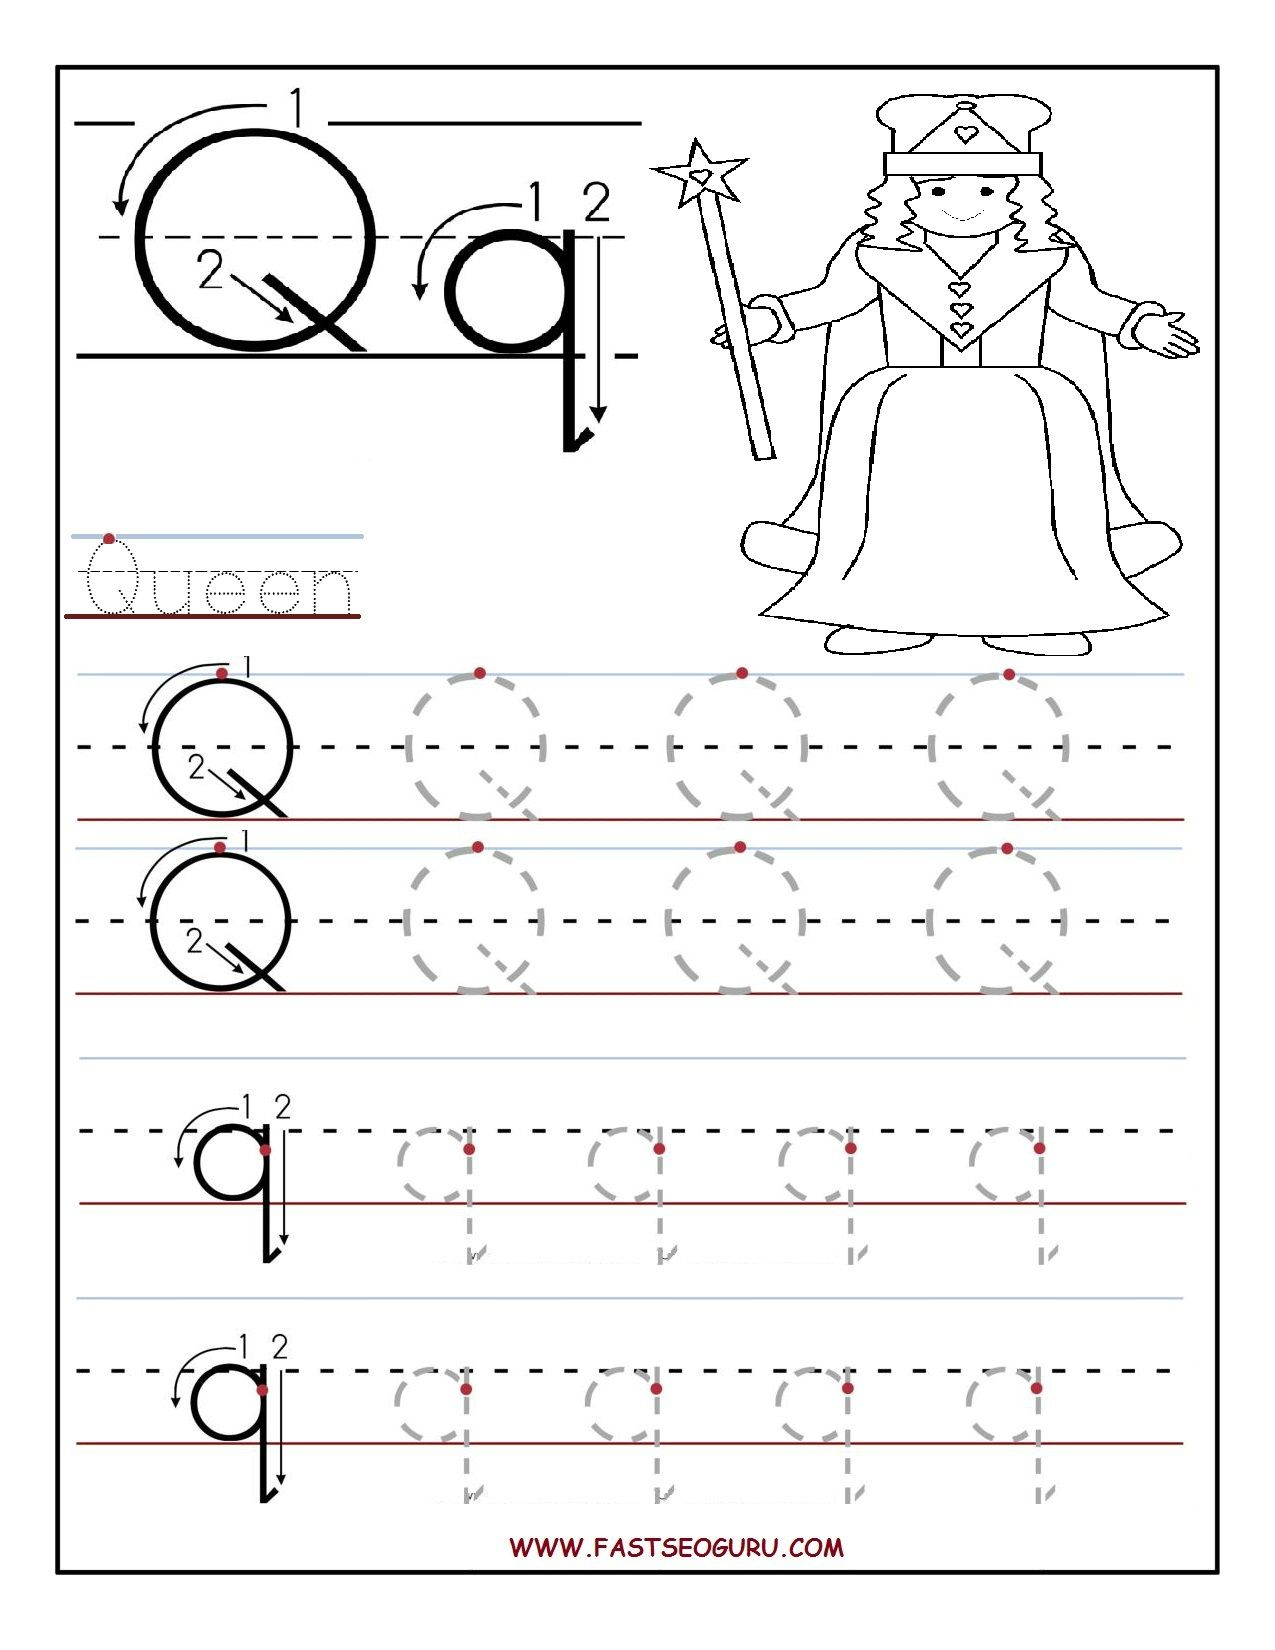 Printable Letter Q Tracing Worksheets For Preschool Jpg 1 275